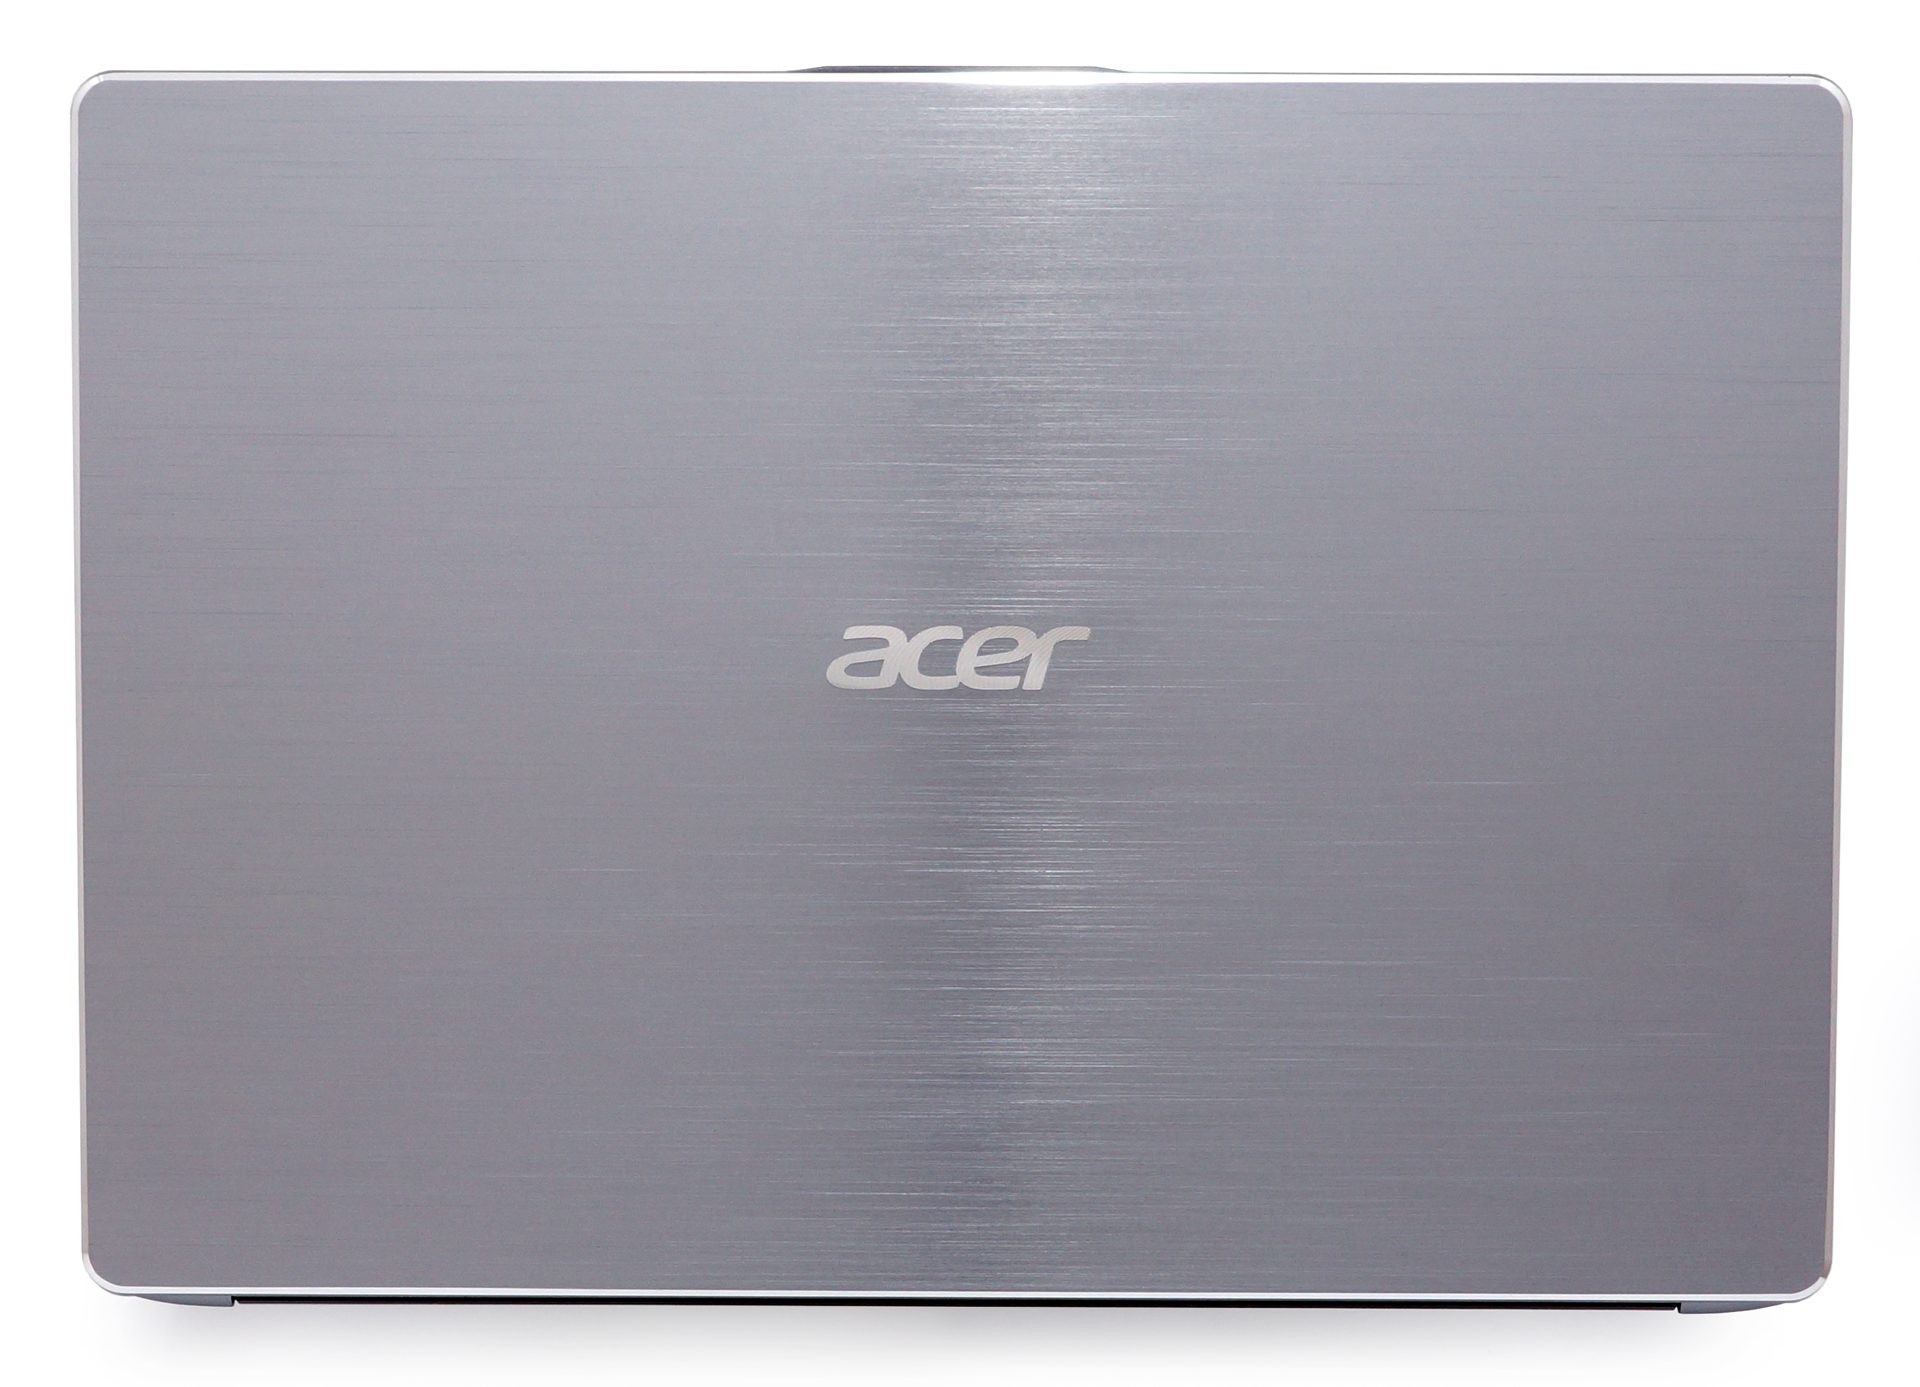 ACER ASPIRE 56S DRIVER WINDOWS 7